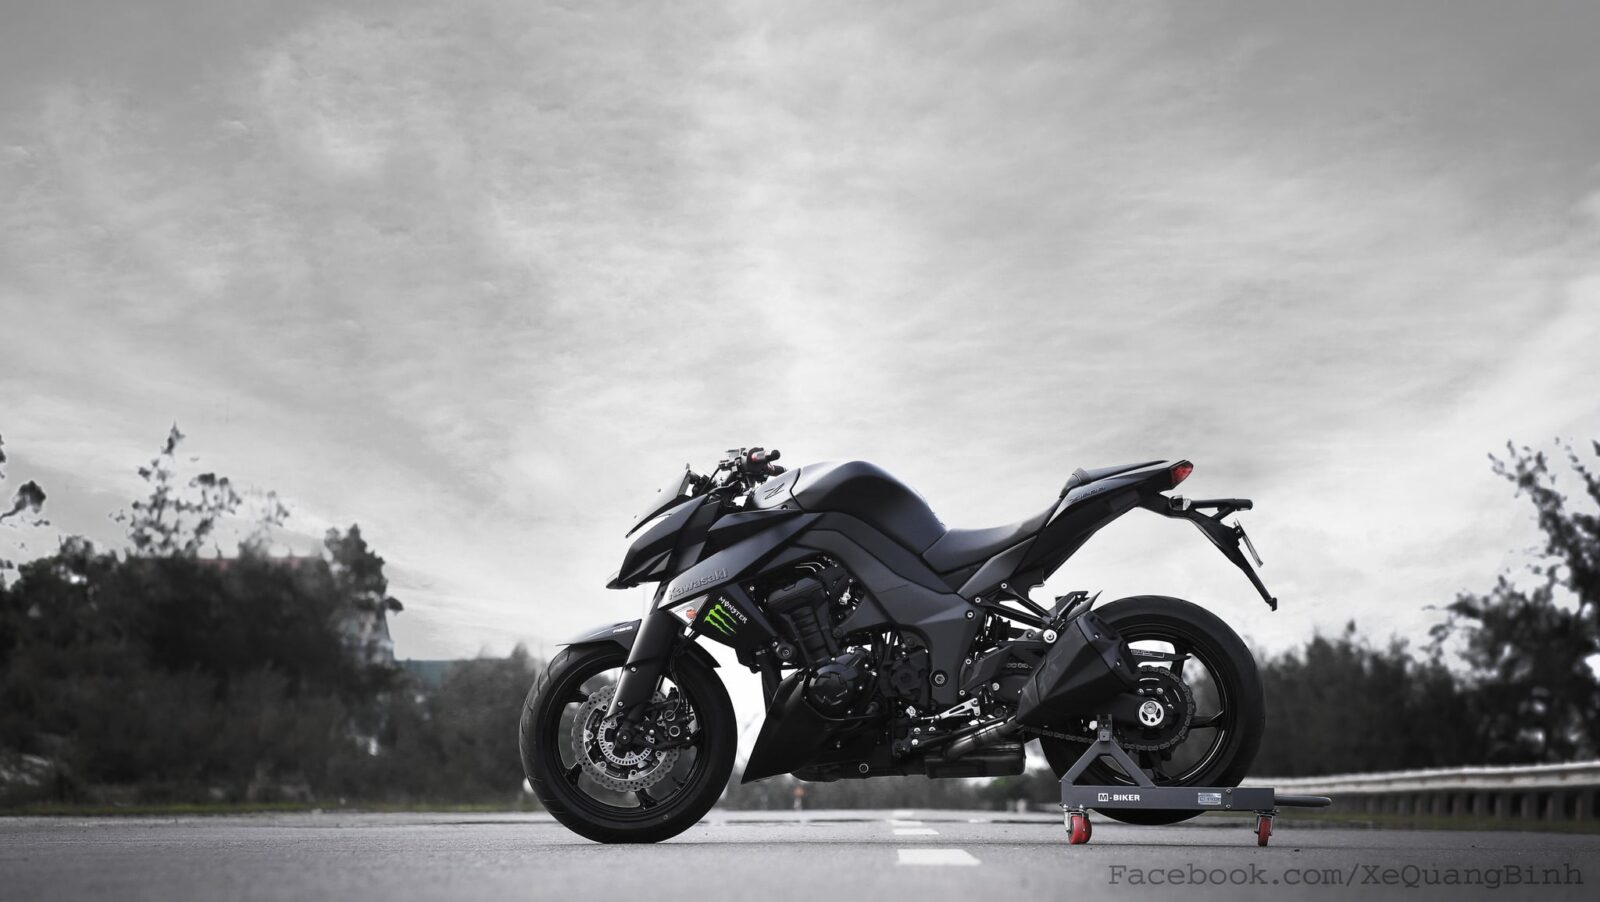 30  Kawasaki Z1000 Wallpapers HD High Quality Download